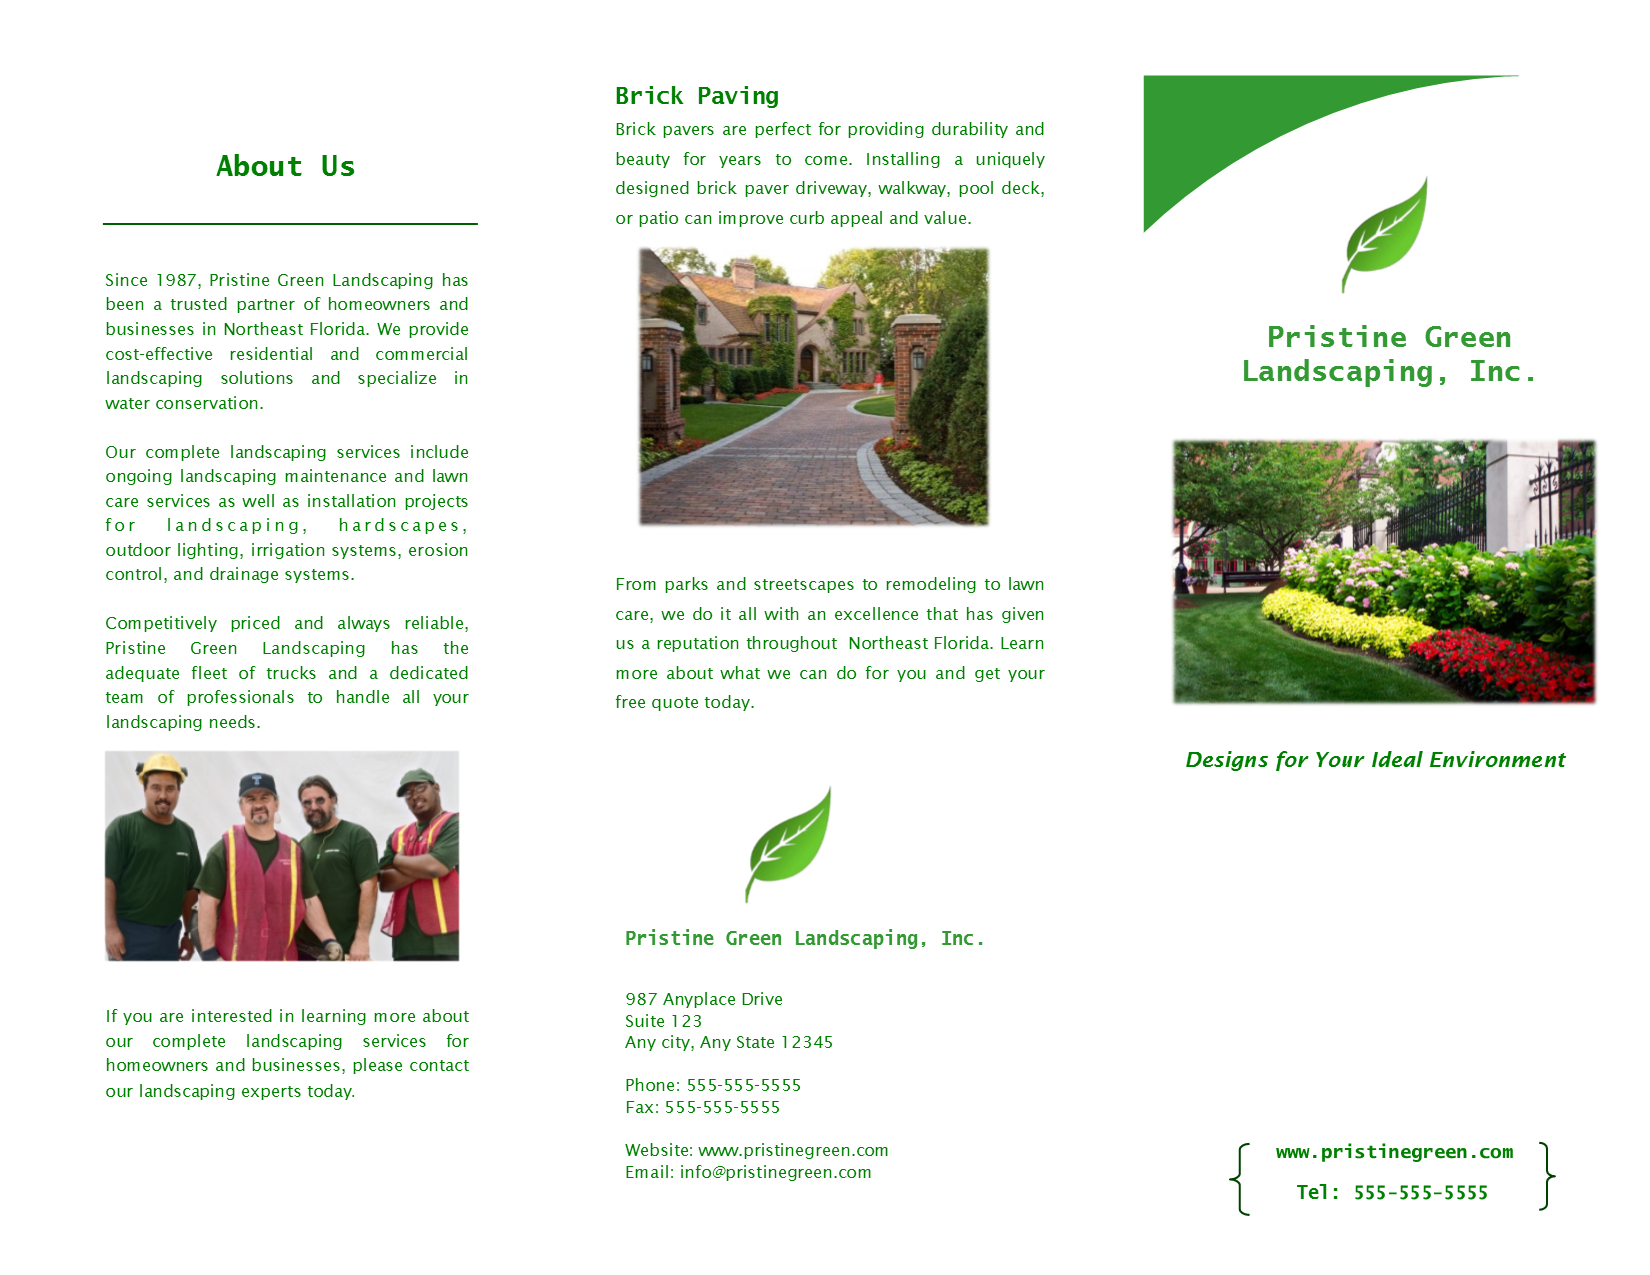 Trifold Brochure Page 1 of 2